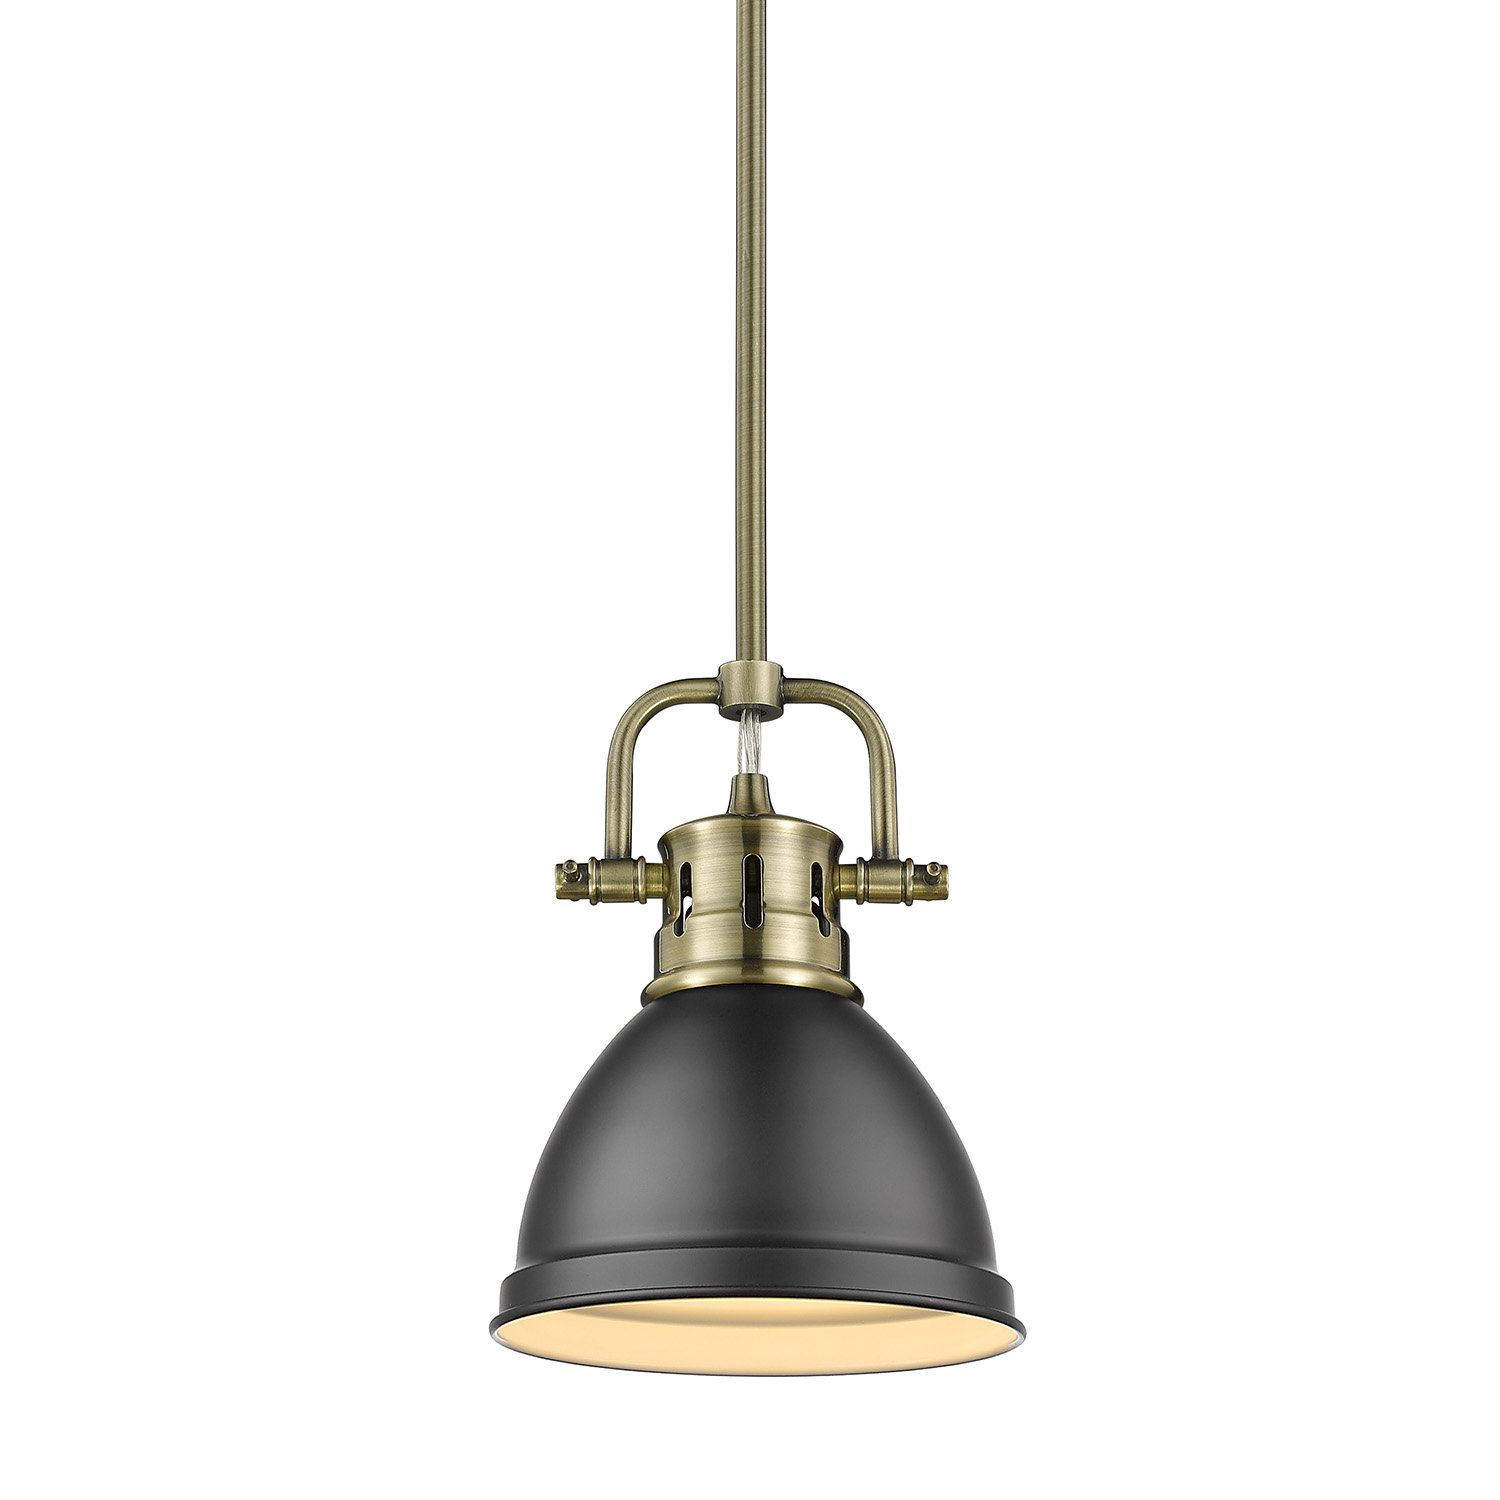 Bodalla 1 Light Single Bell Pendant Within Bodalla 1 Light Single Bell Pendants (View 8 of 30)